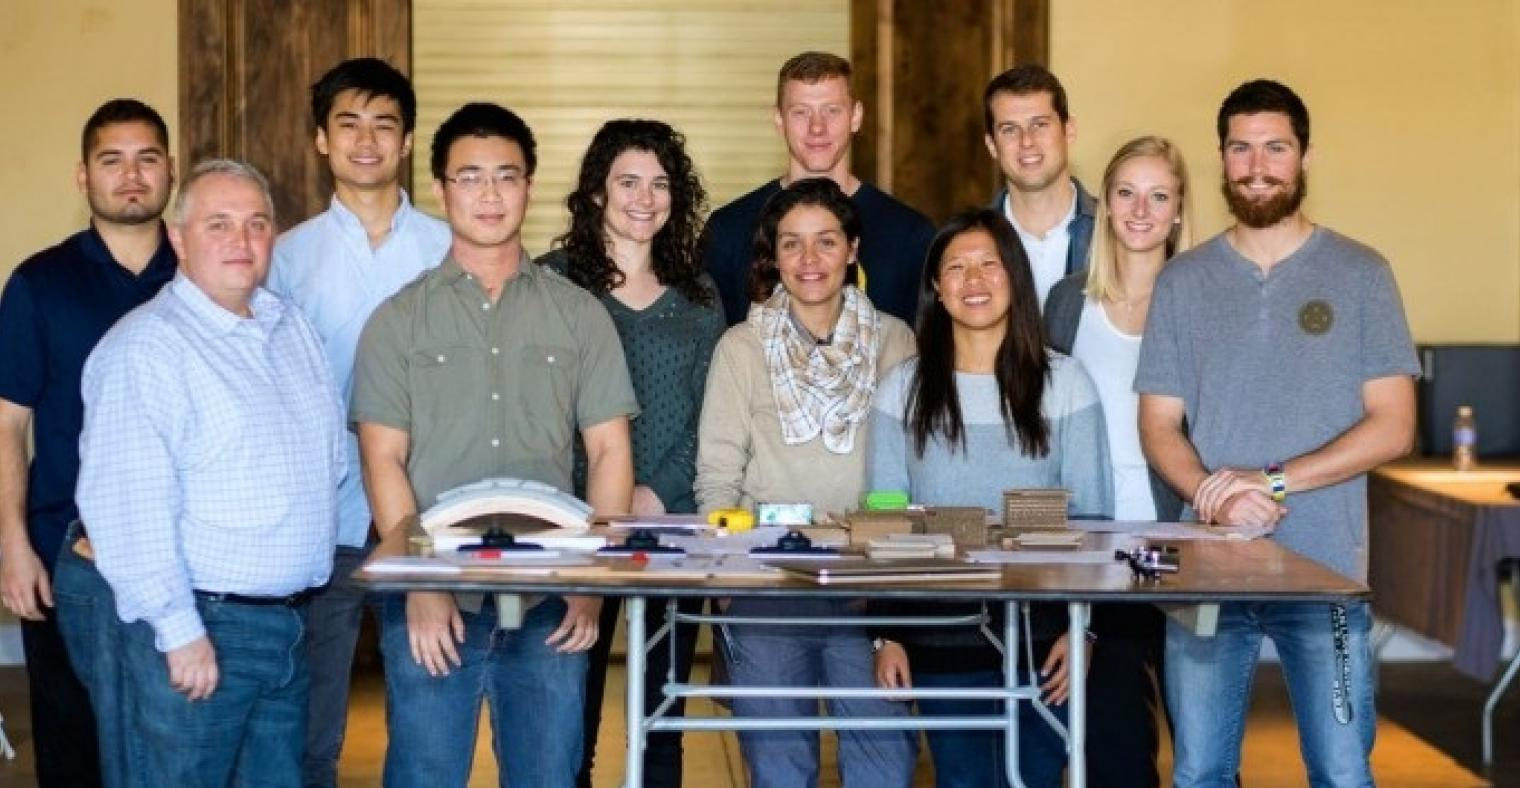 Specright's partnership w/ Cal Poly San Luis Obispo allows the company to employ the university's packaging students, while giving them the hands-on experience needed to excel in agtech. Specright's leadership team is pictured here with Cal Poyl students.